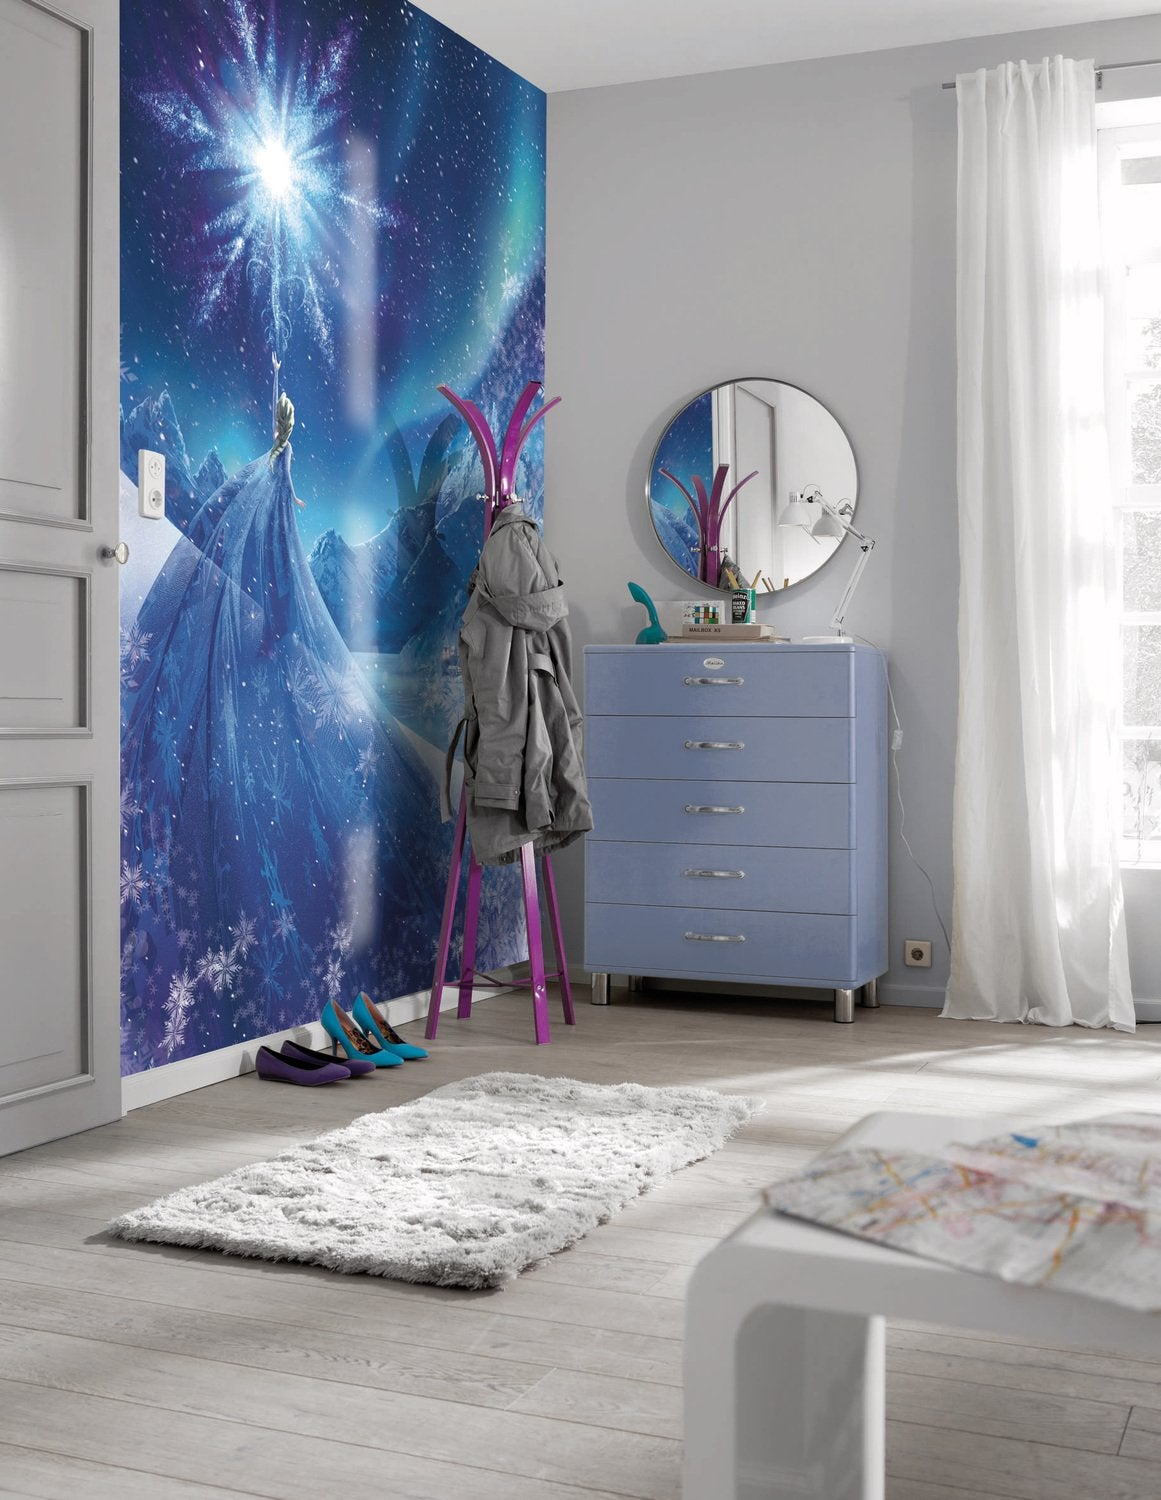 poster mural leroy merlin poster xxl mural leroy merlin angers evier phenomenal chaiss diner. Black Bedroom Furniture Sets. Home Design Ideas